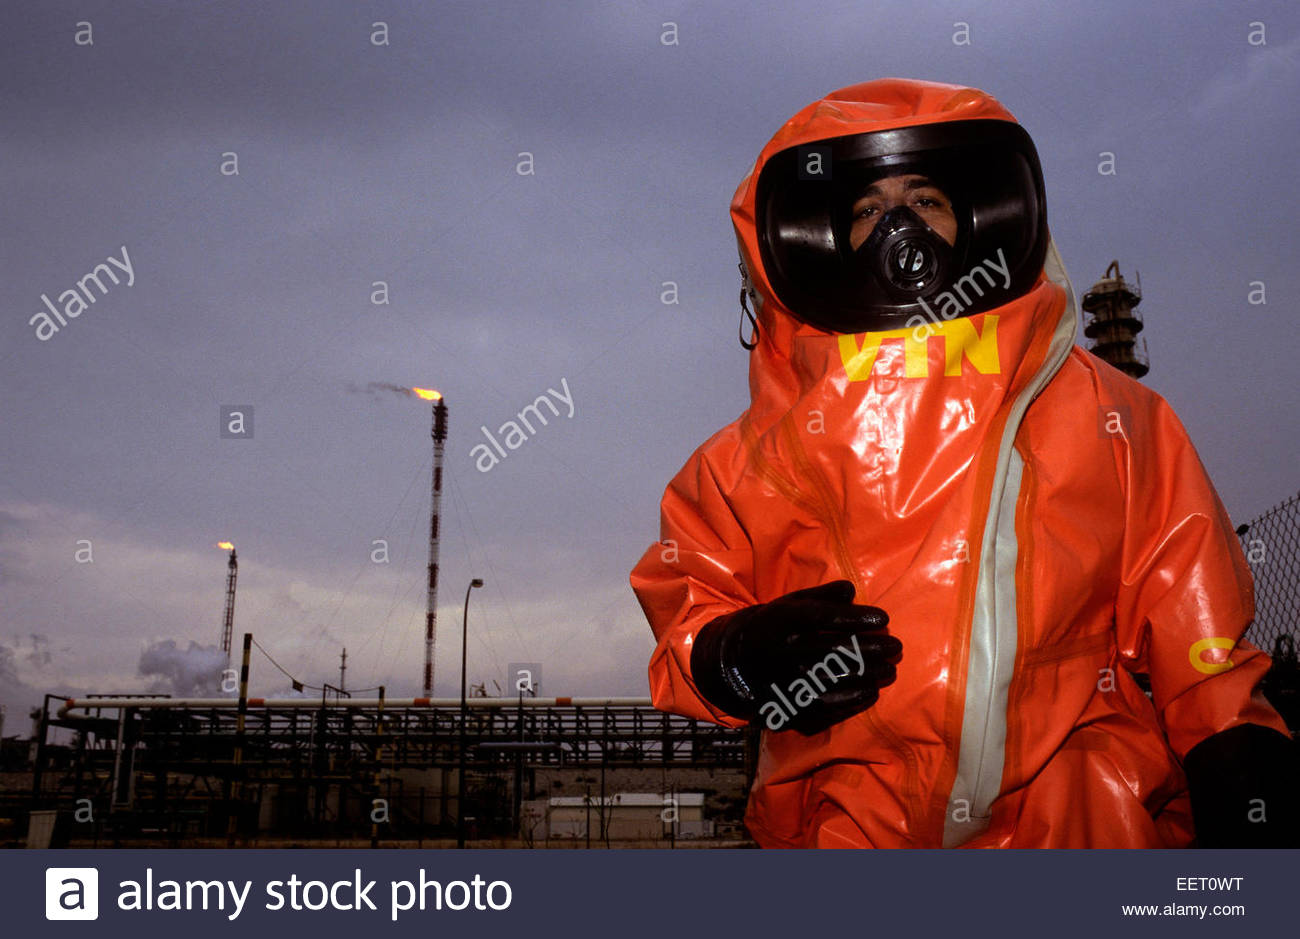 Fireman on contaminated site, France. - Stock Image